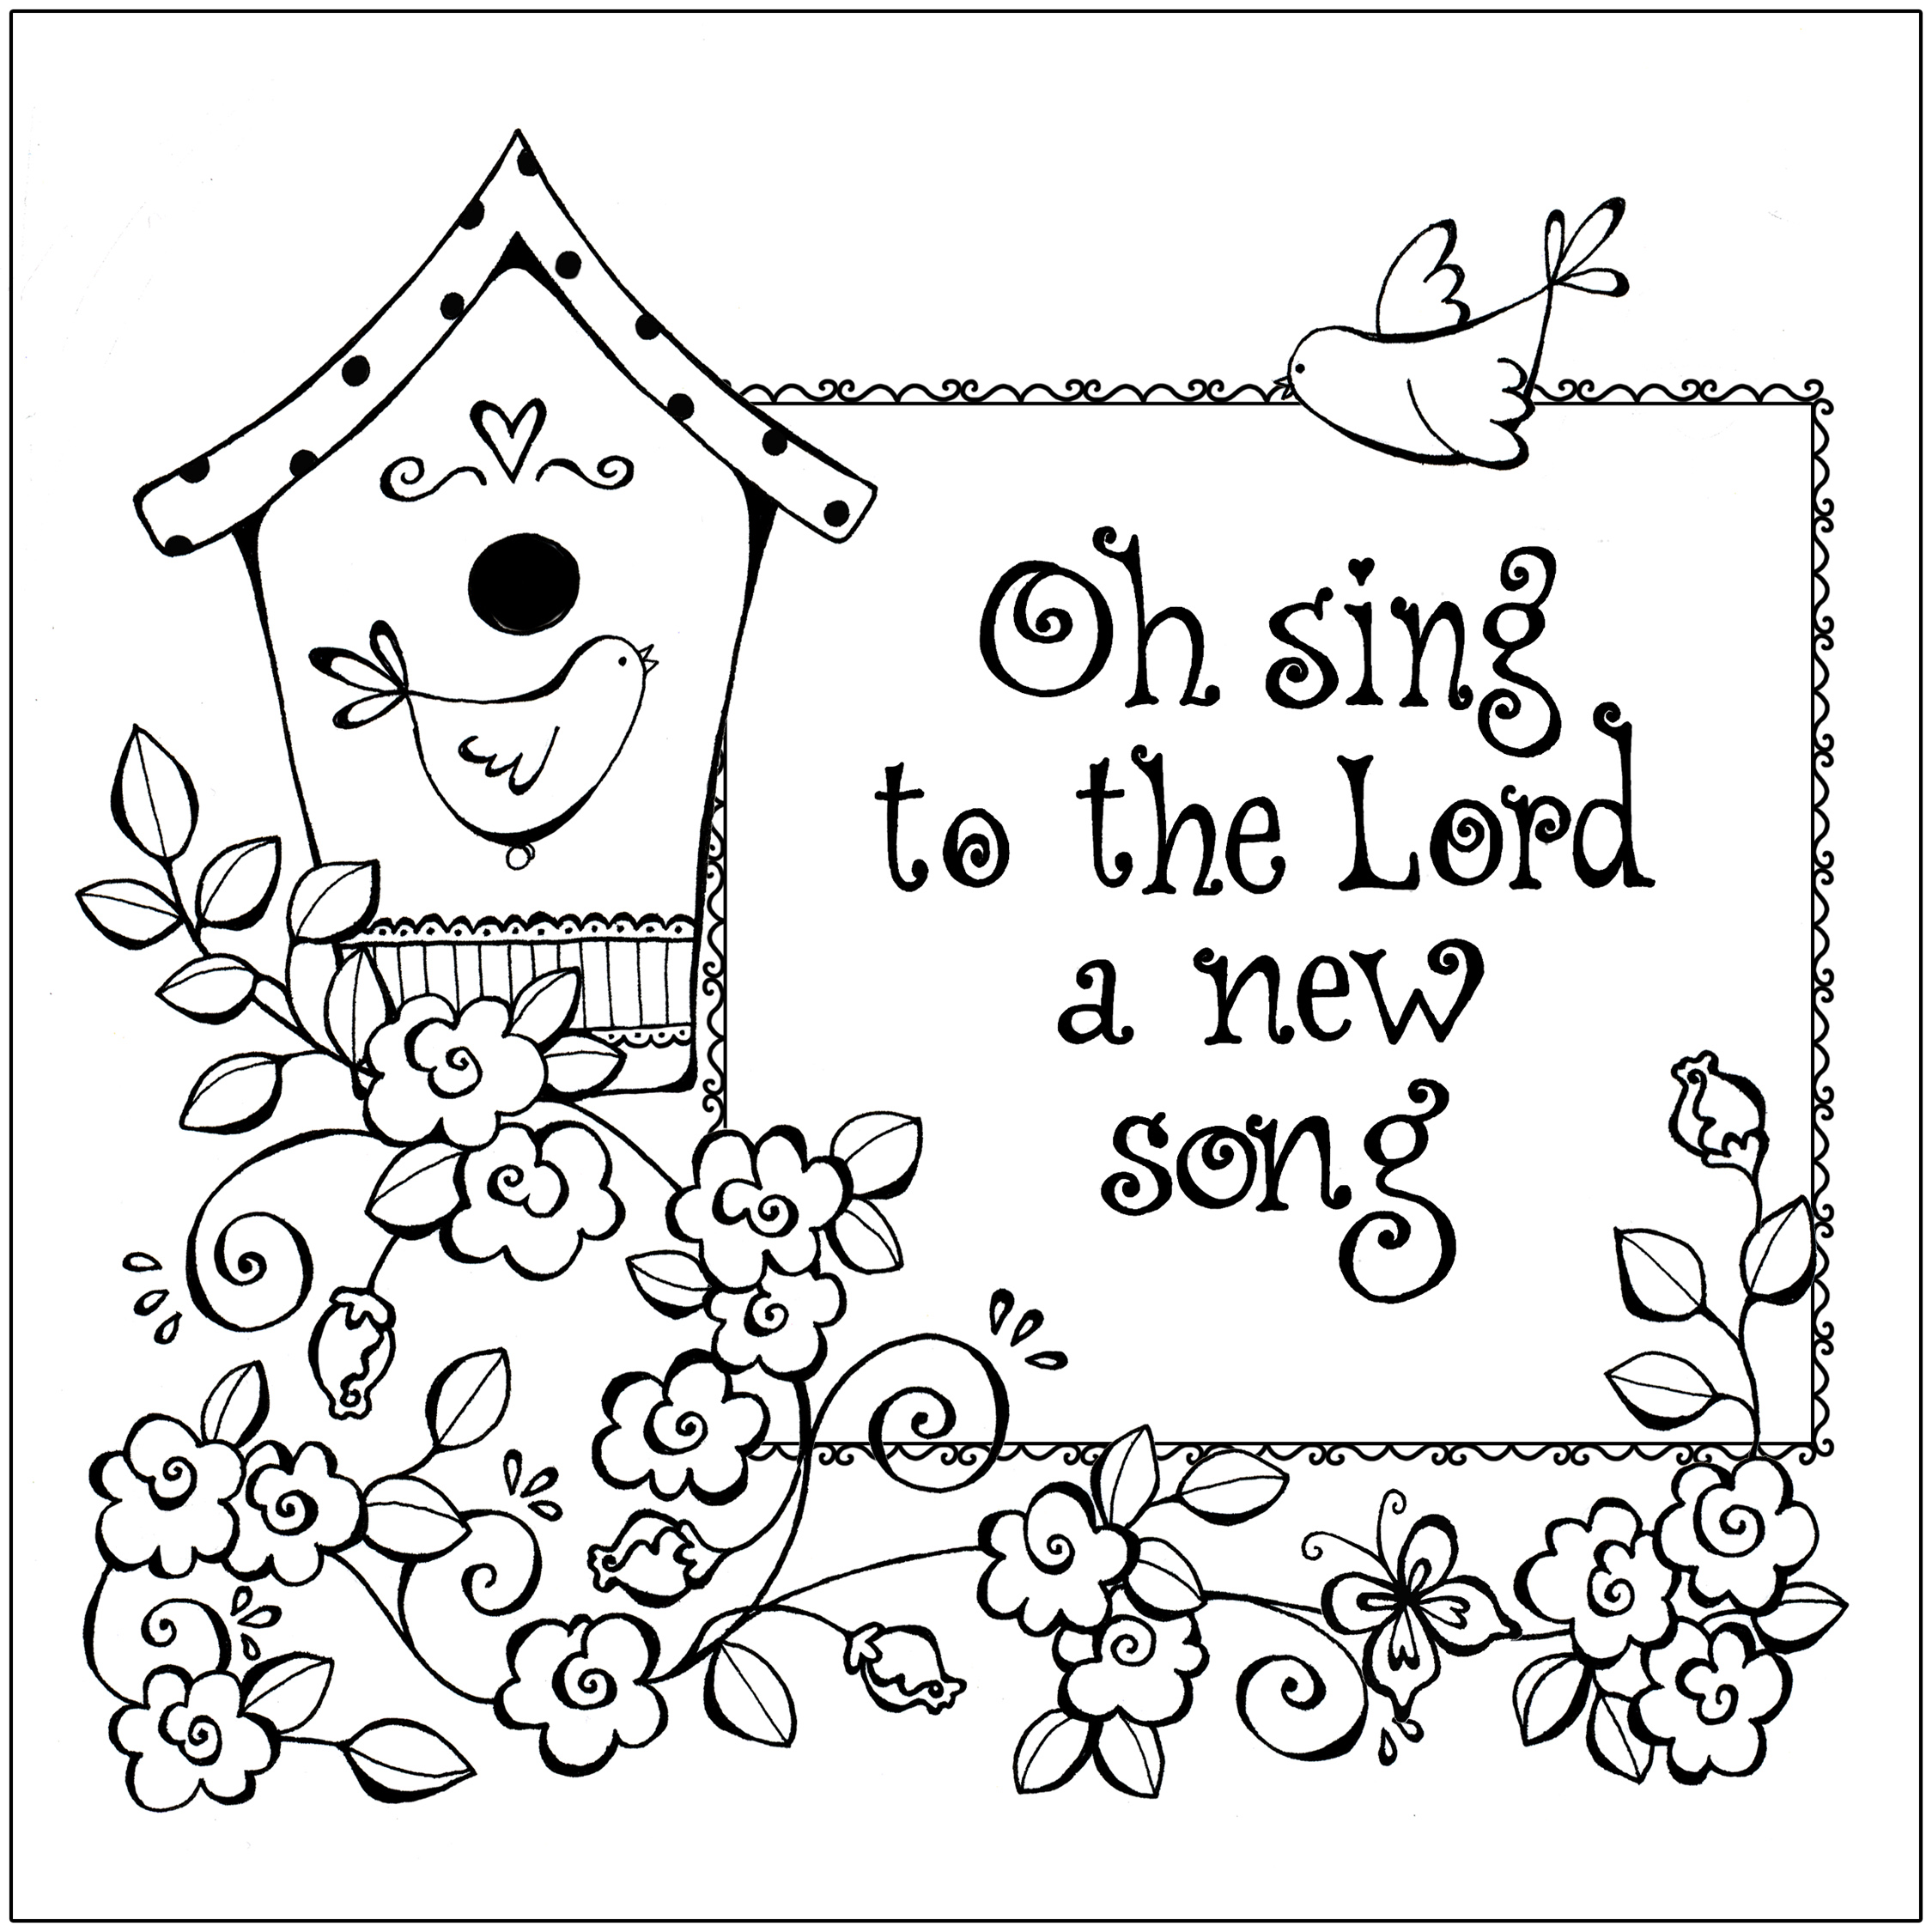 christian coloring page printable images - Bible Coloring Pages For Kids